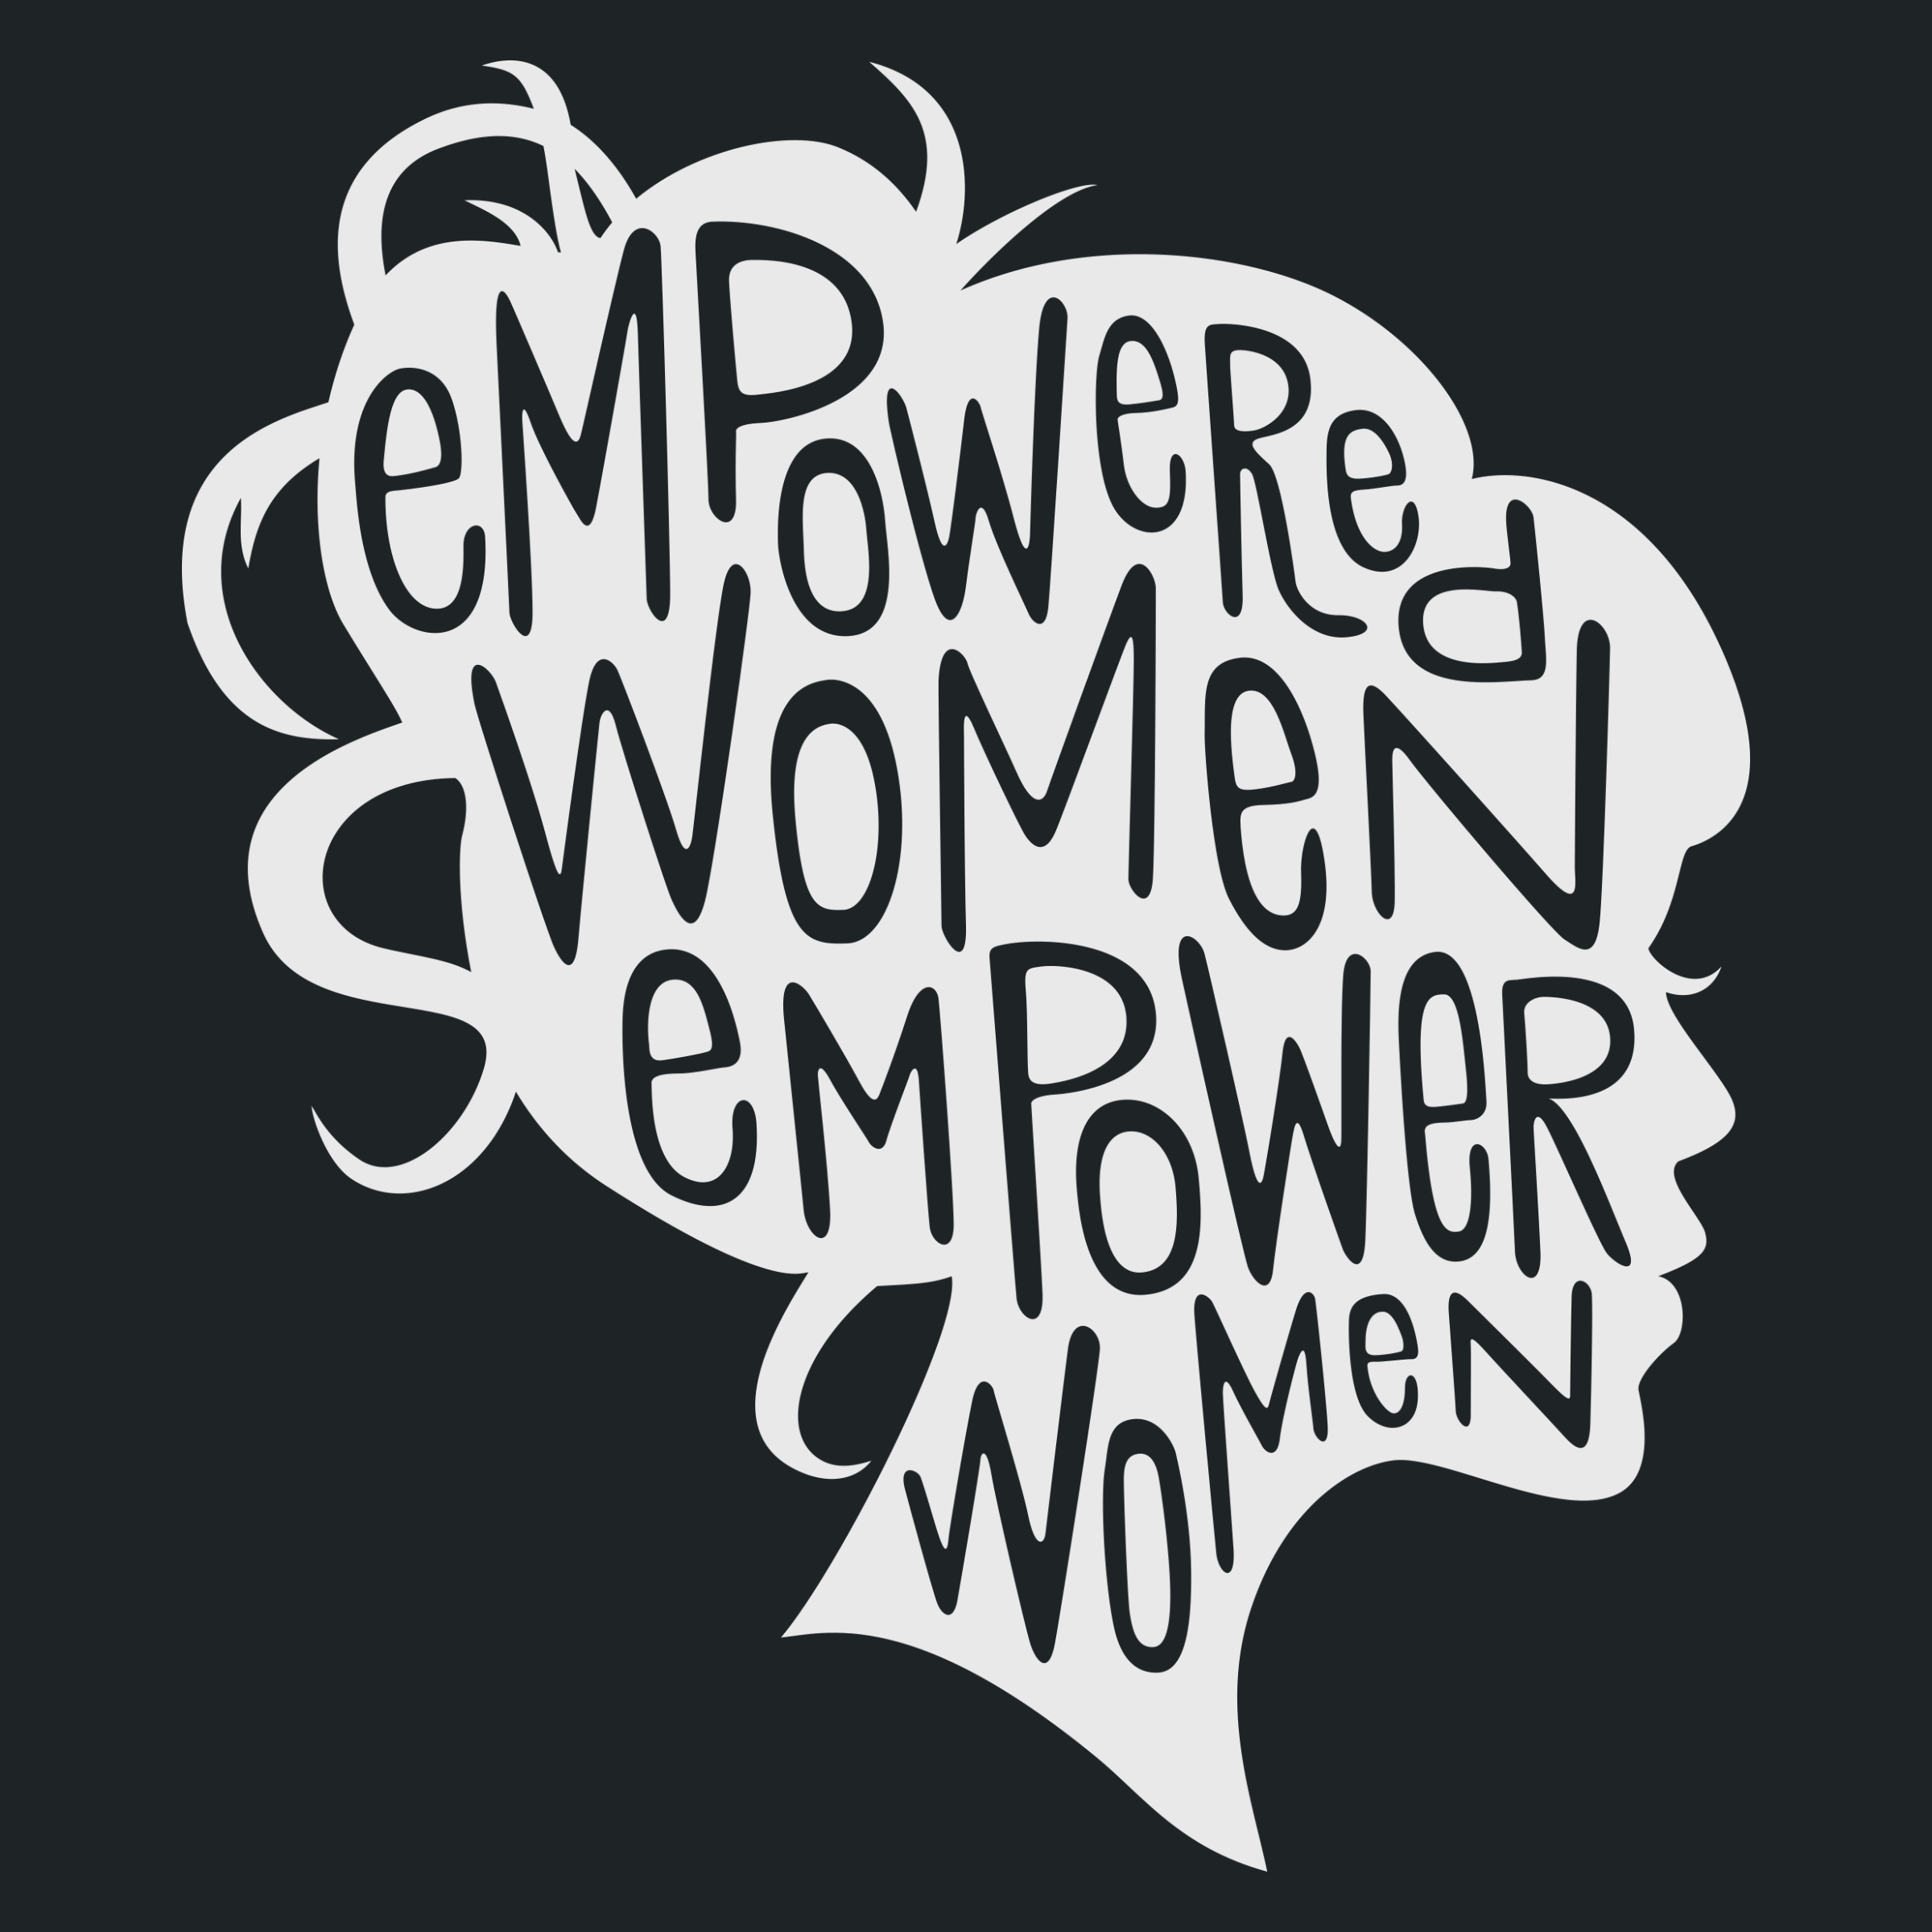 Empowered Women Empower Women Detail